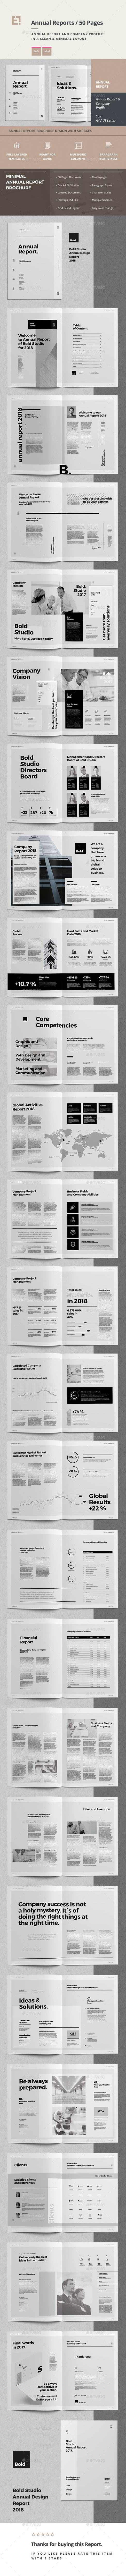 Annual Report The Annual Report Template is perfect for the publication of a complete and professional annual report. It's divided into a first part with photos and narrative to provide all the interesting information about the company and a second part, contains the financial details with graphics for a visual result.